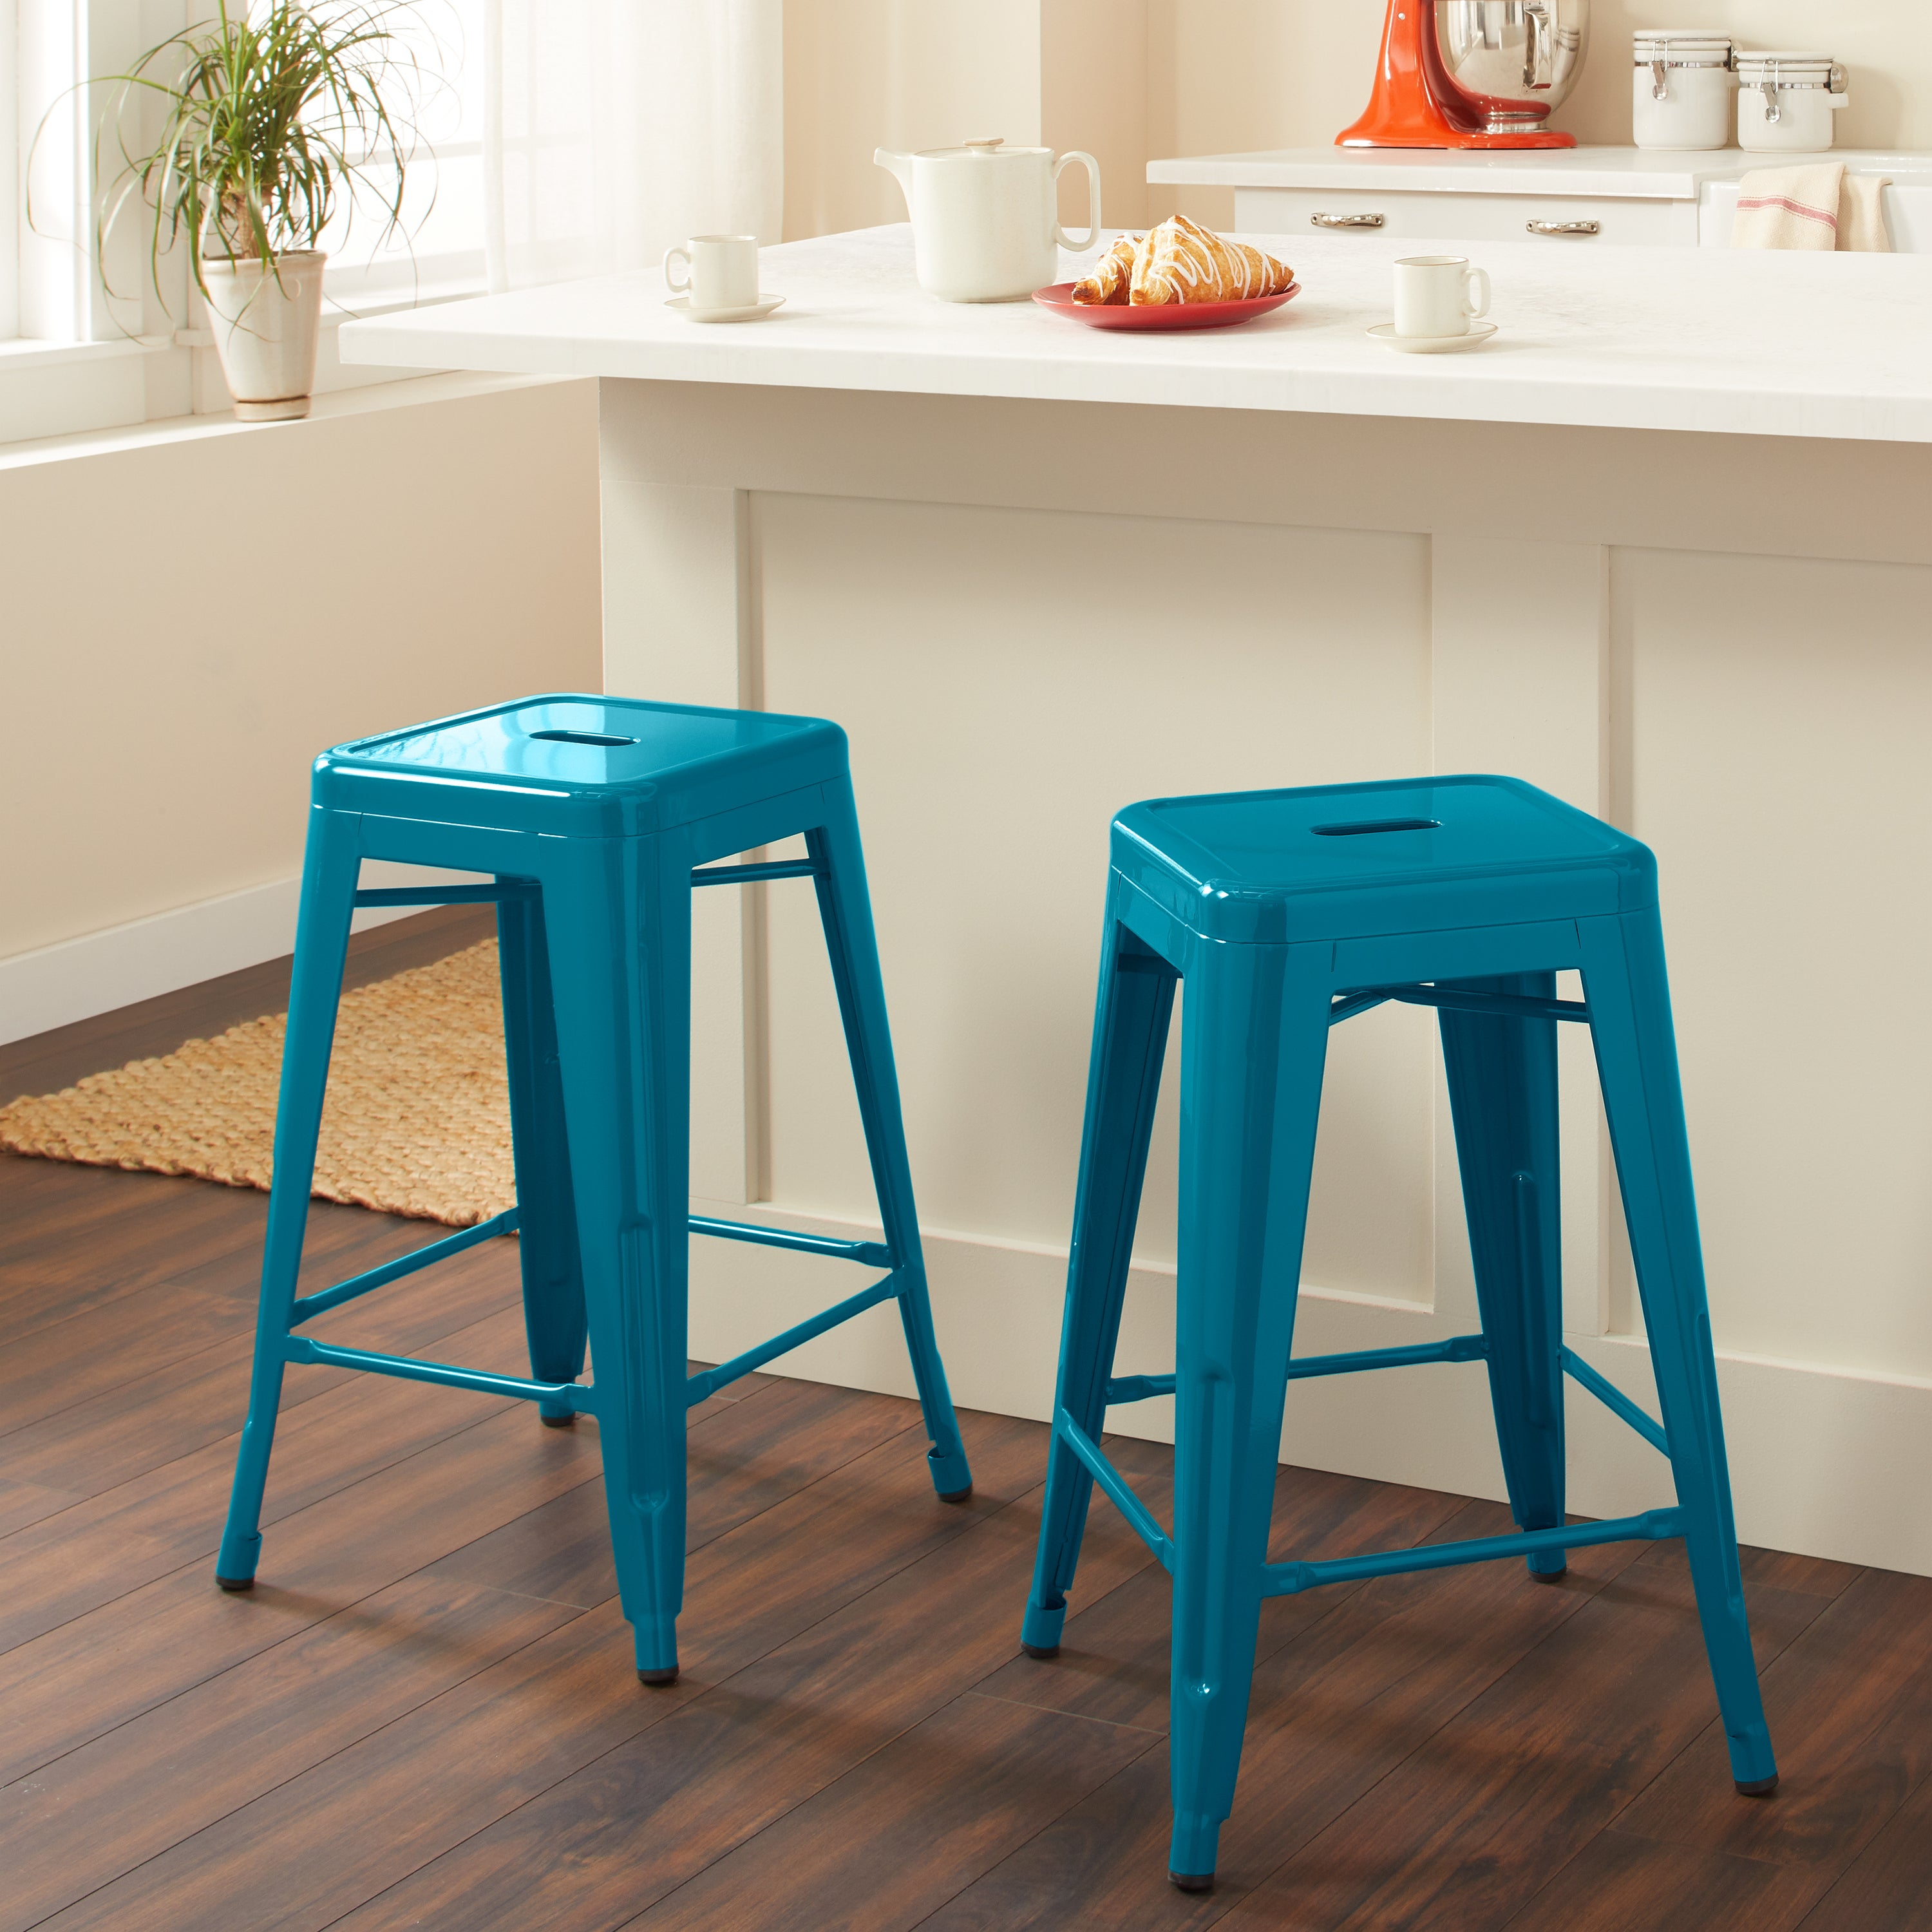 Buy Industrial Counter & Bar Stools Online at Overstock.com | Our ...